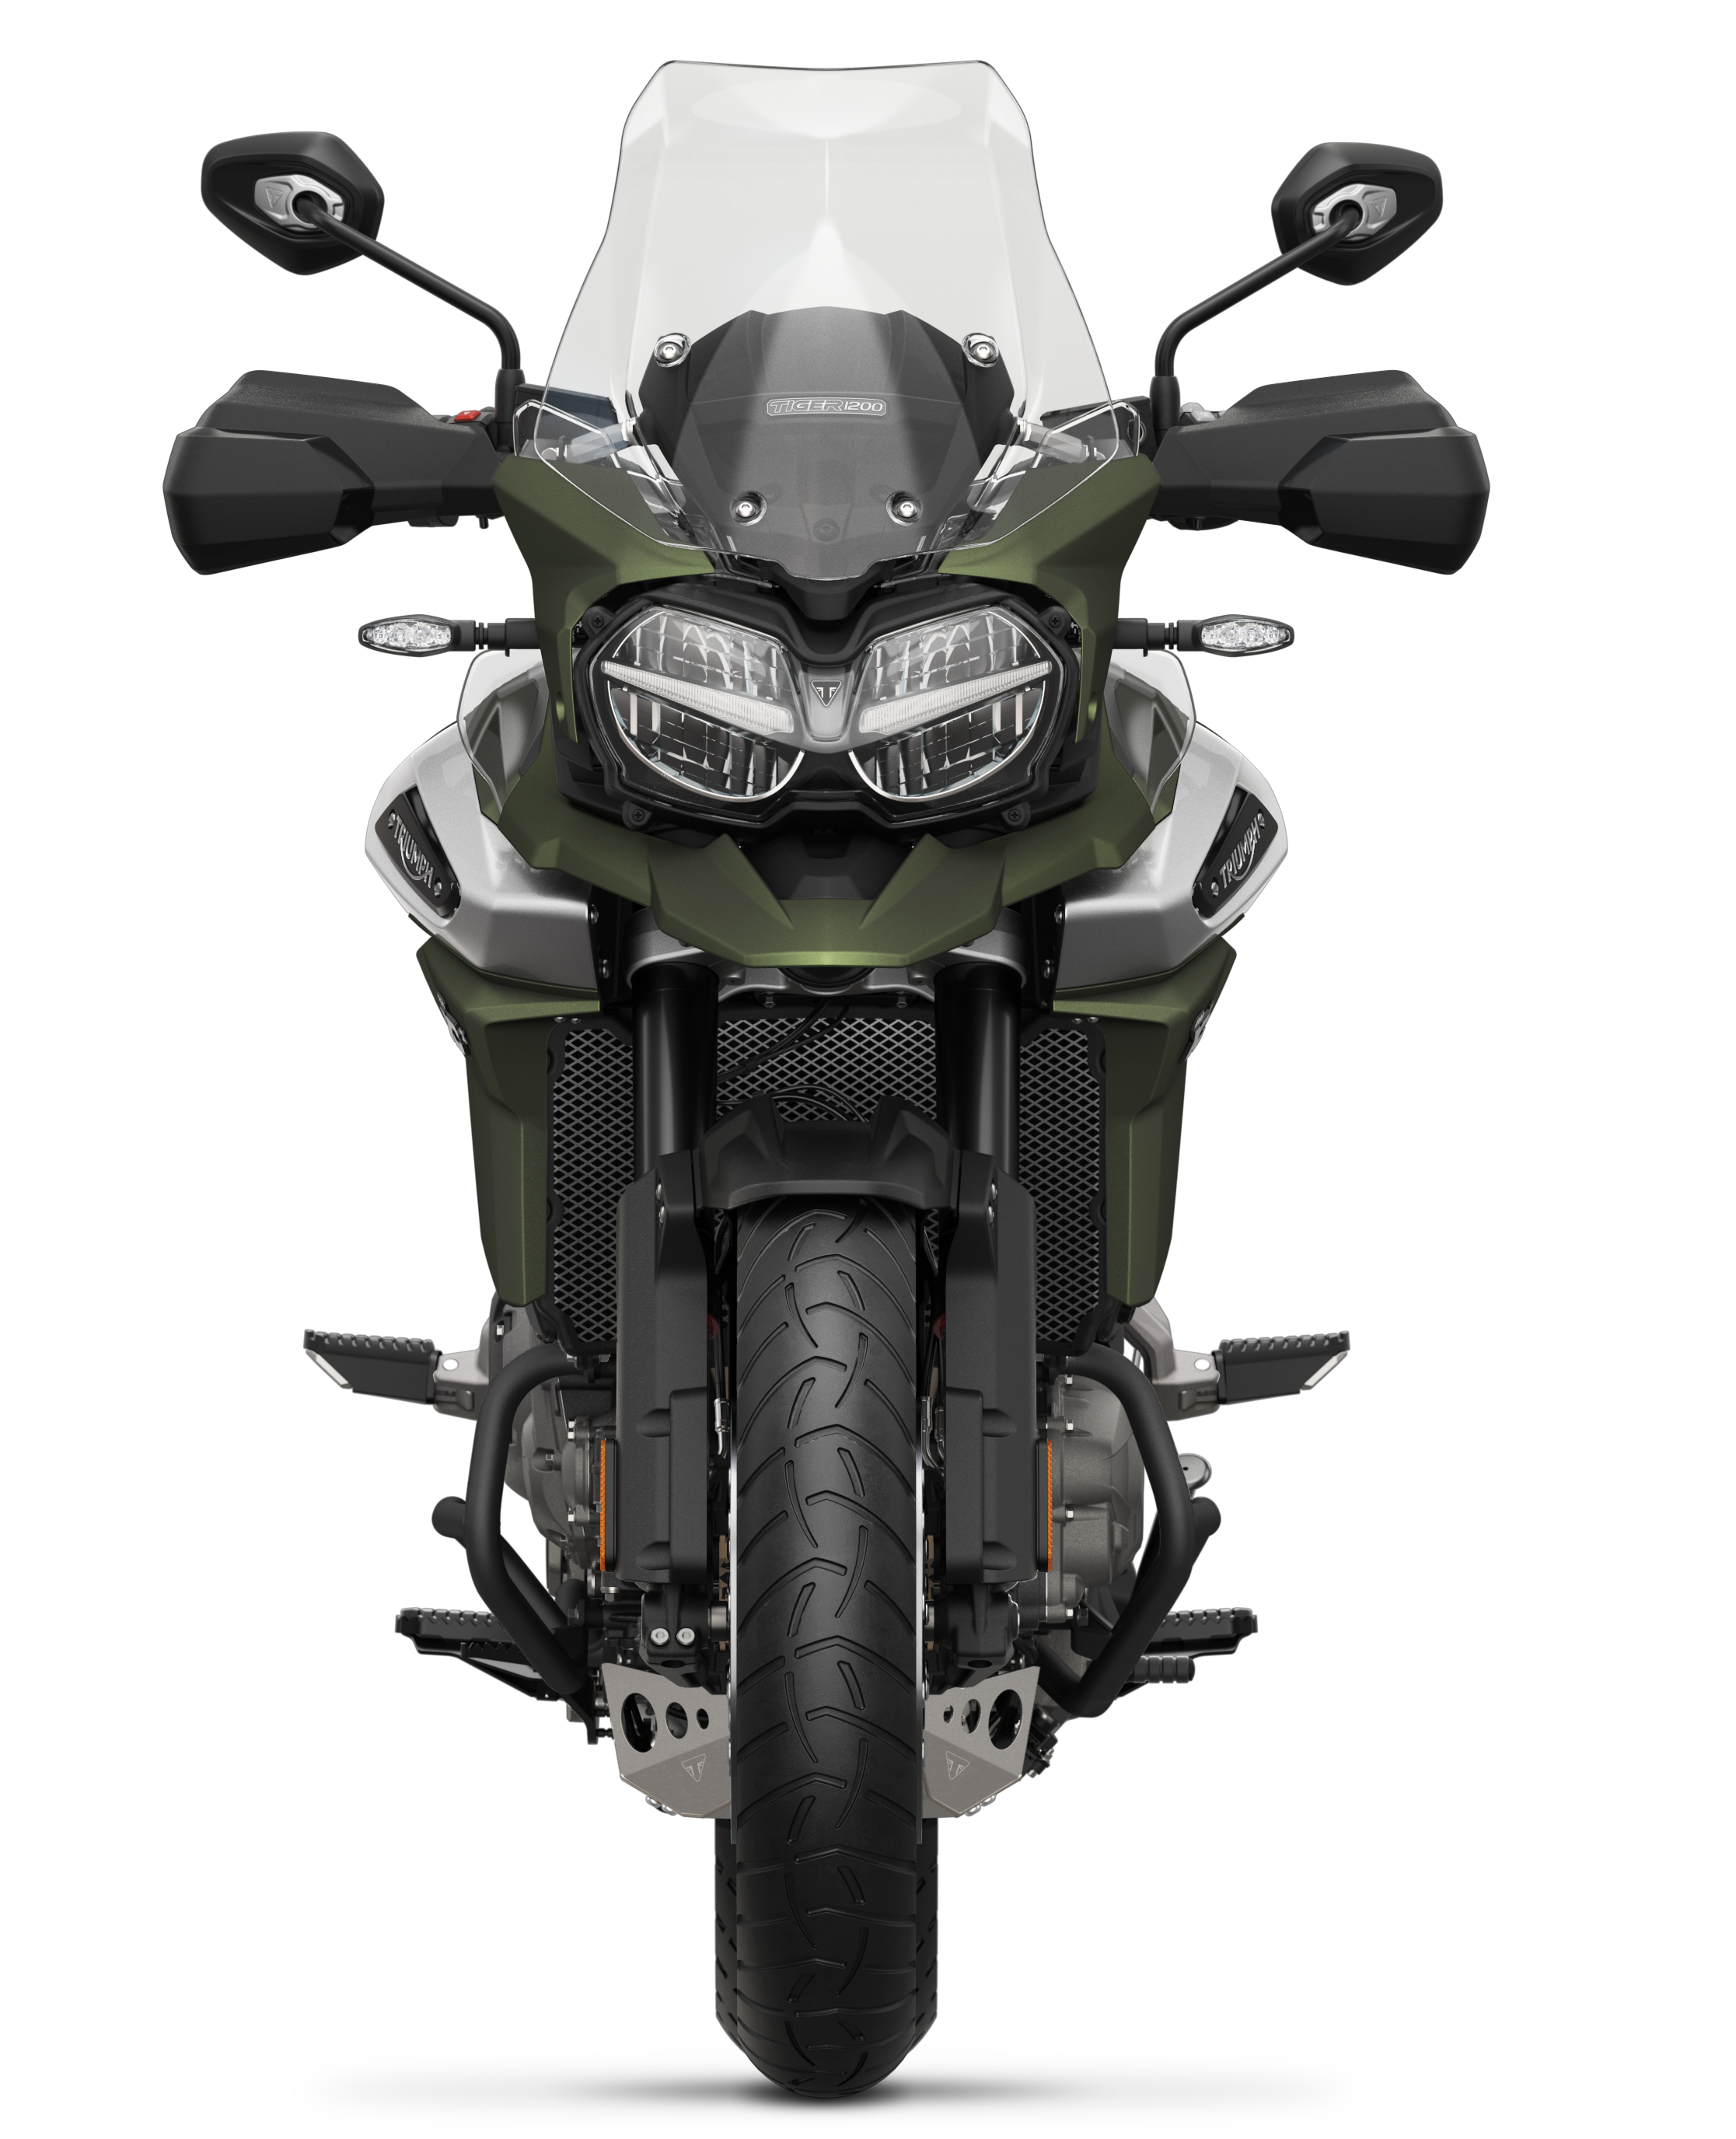 Triumph Tiger 1200 Price Triumph Tiger 1200 Xcx Launched At Rs 17